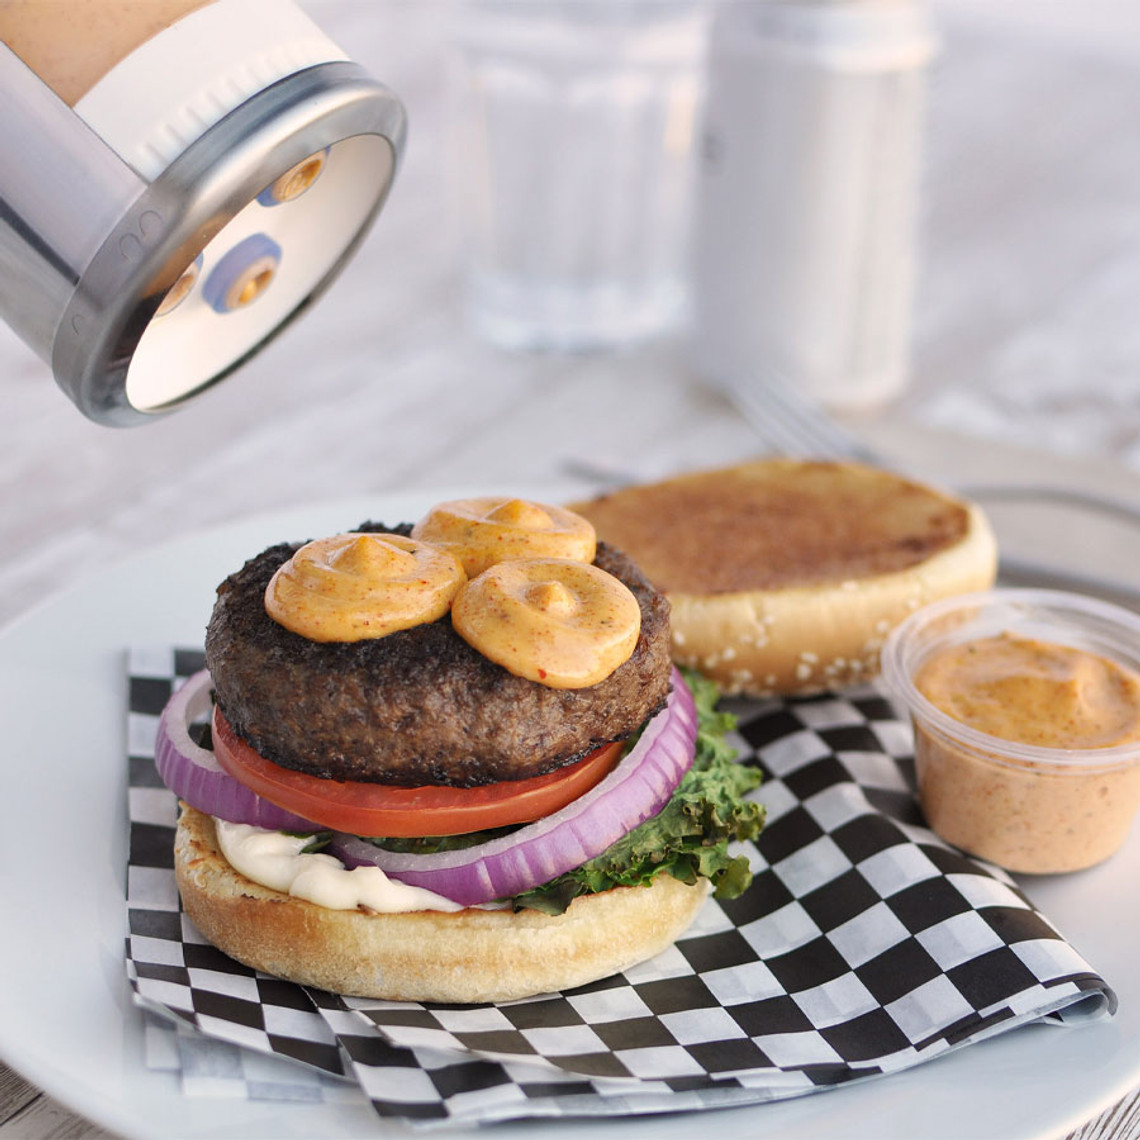 Sauce Gun Bottle's three valve dispensing cap provides great coverage for burgers and sandwiches